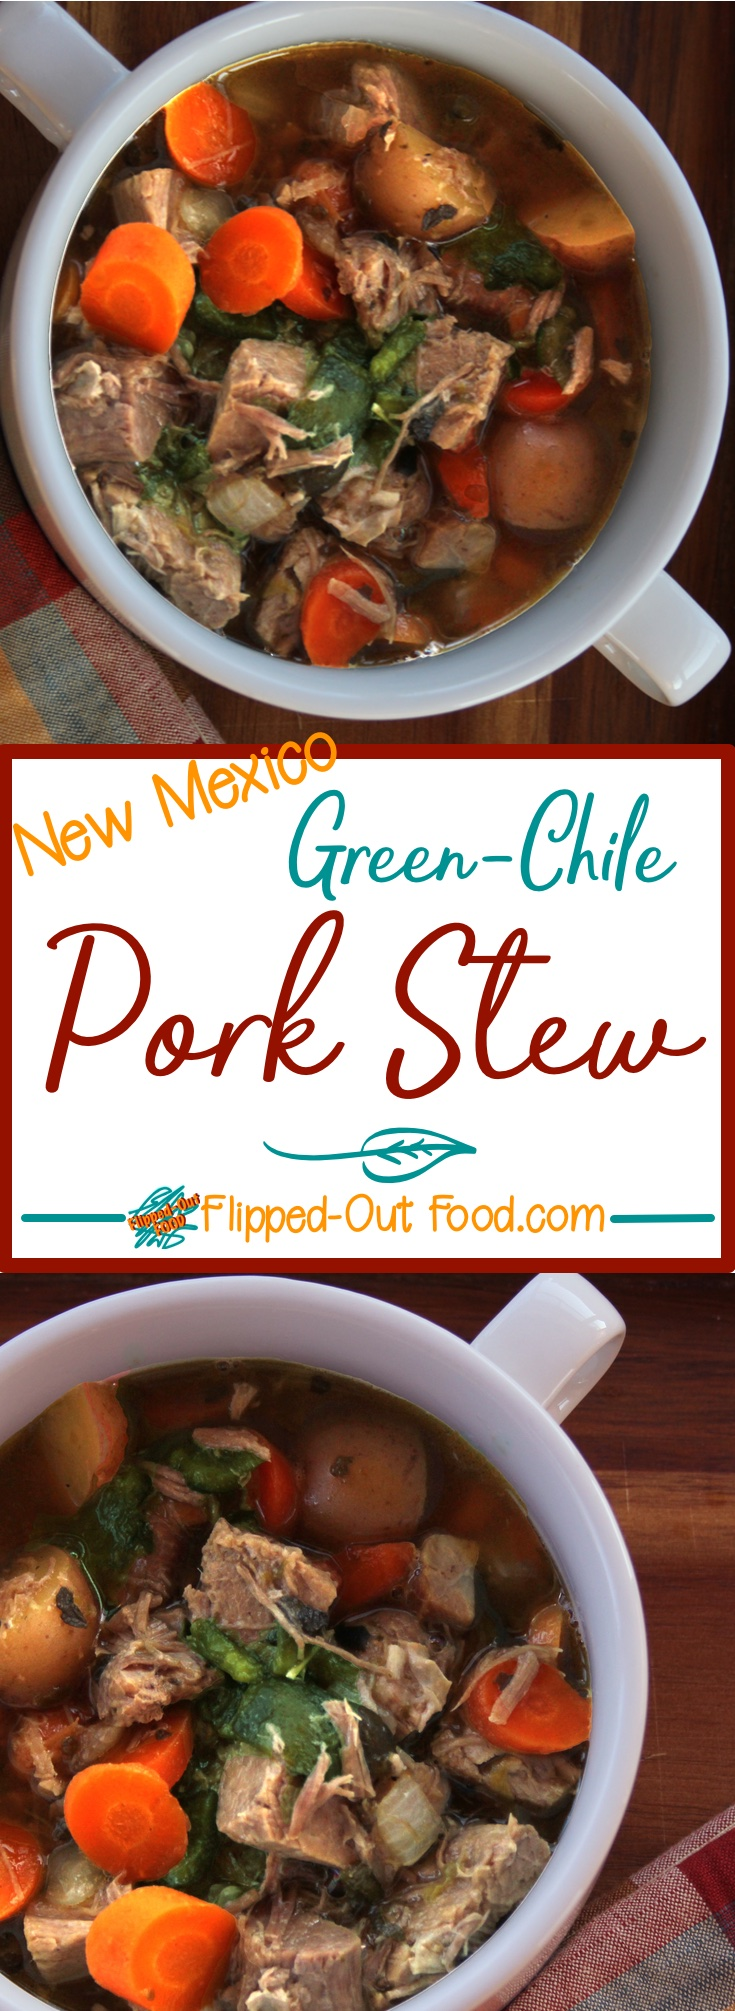 Green Chile Pork Stew is a hearty meal and a great dish to make 1-2 days in advance in the slow-cooker!